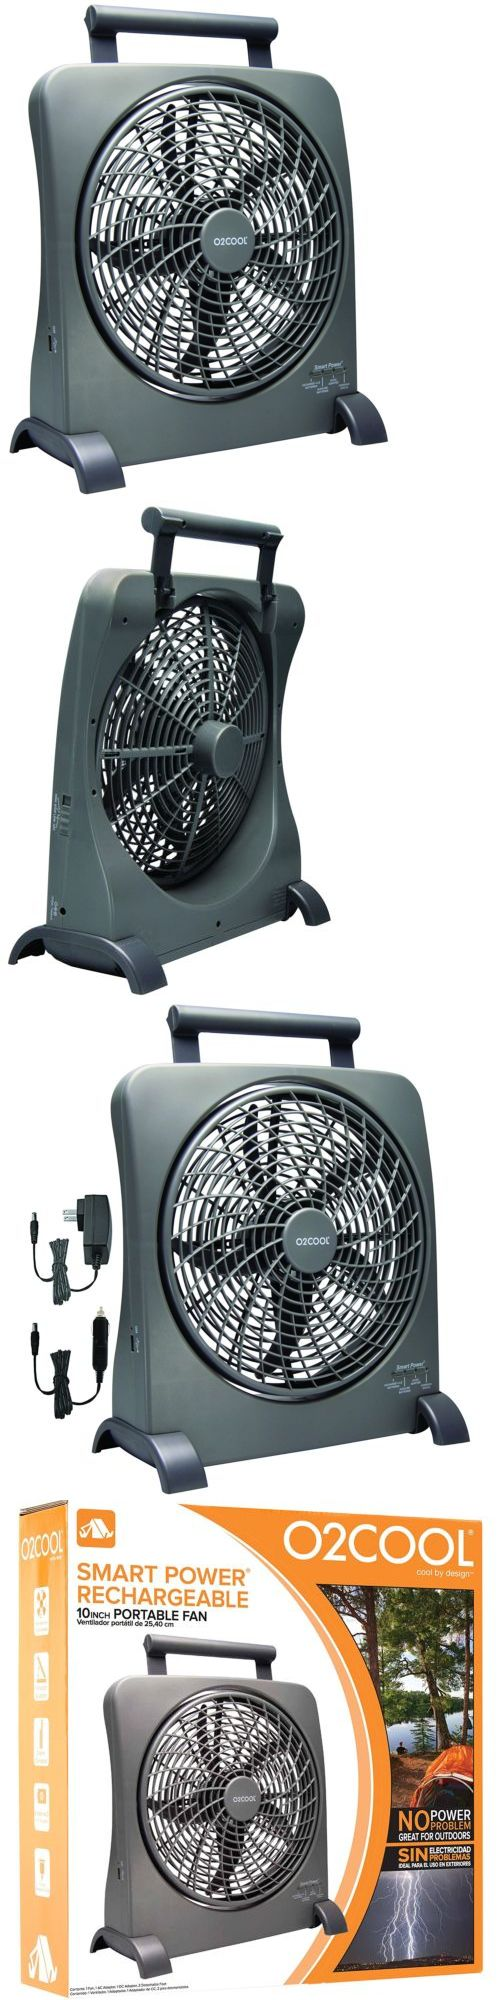 Portable Fans 20612: O2cool 10 Portable Smart Power Swivel Fan With Ac Adapter And Usb Charging Port -> BUY IT NOW ONLY: $44.57 on eBay!